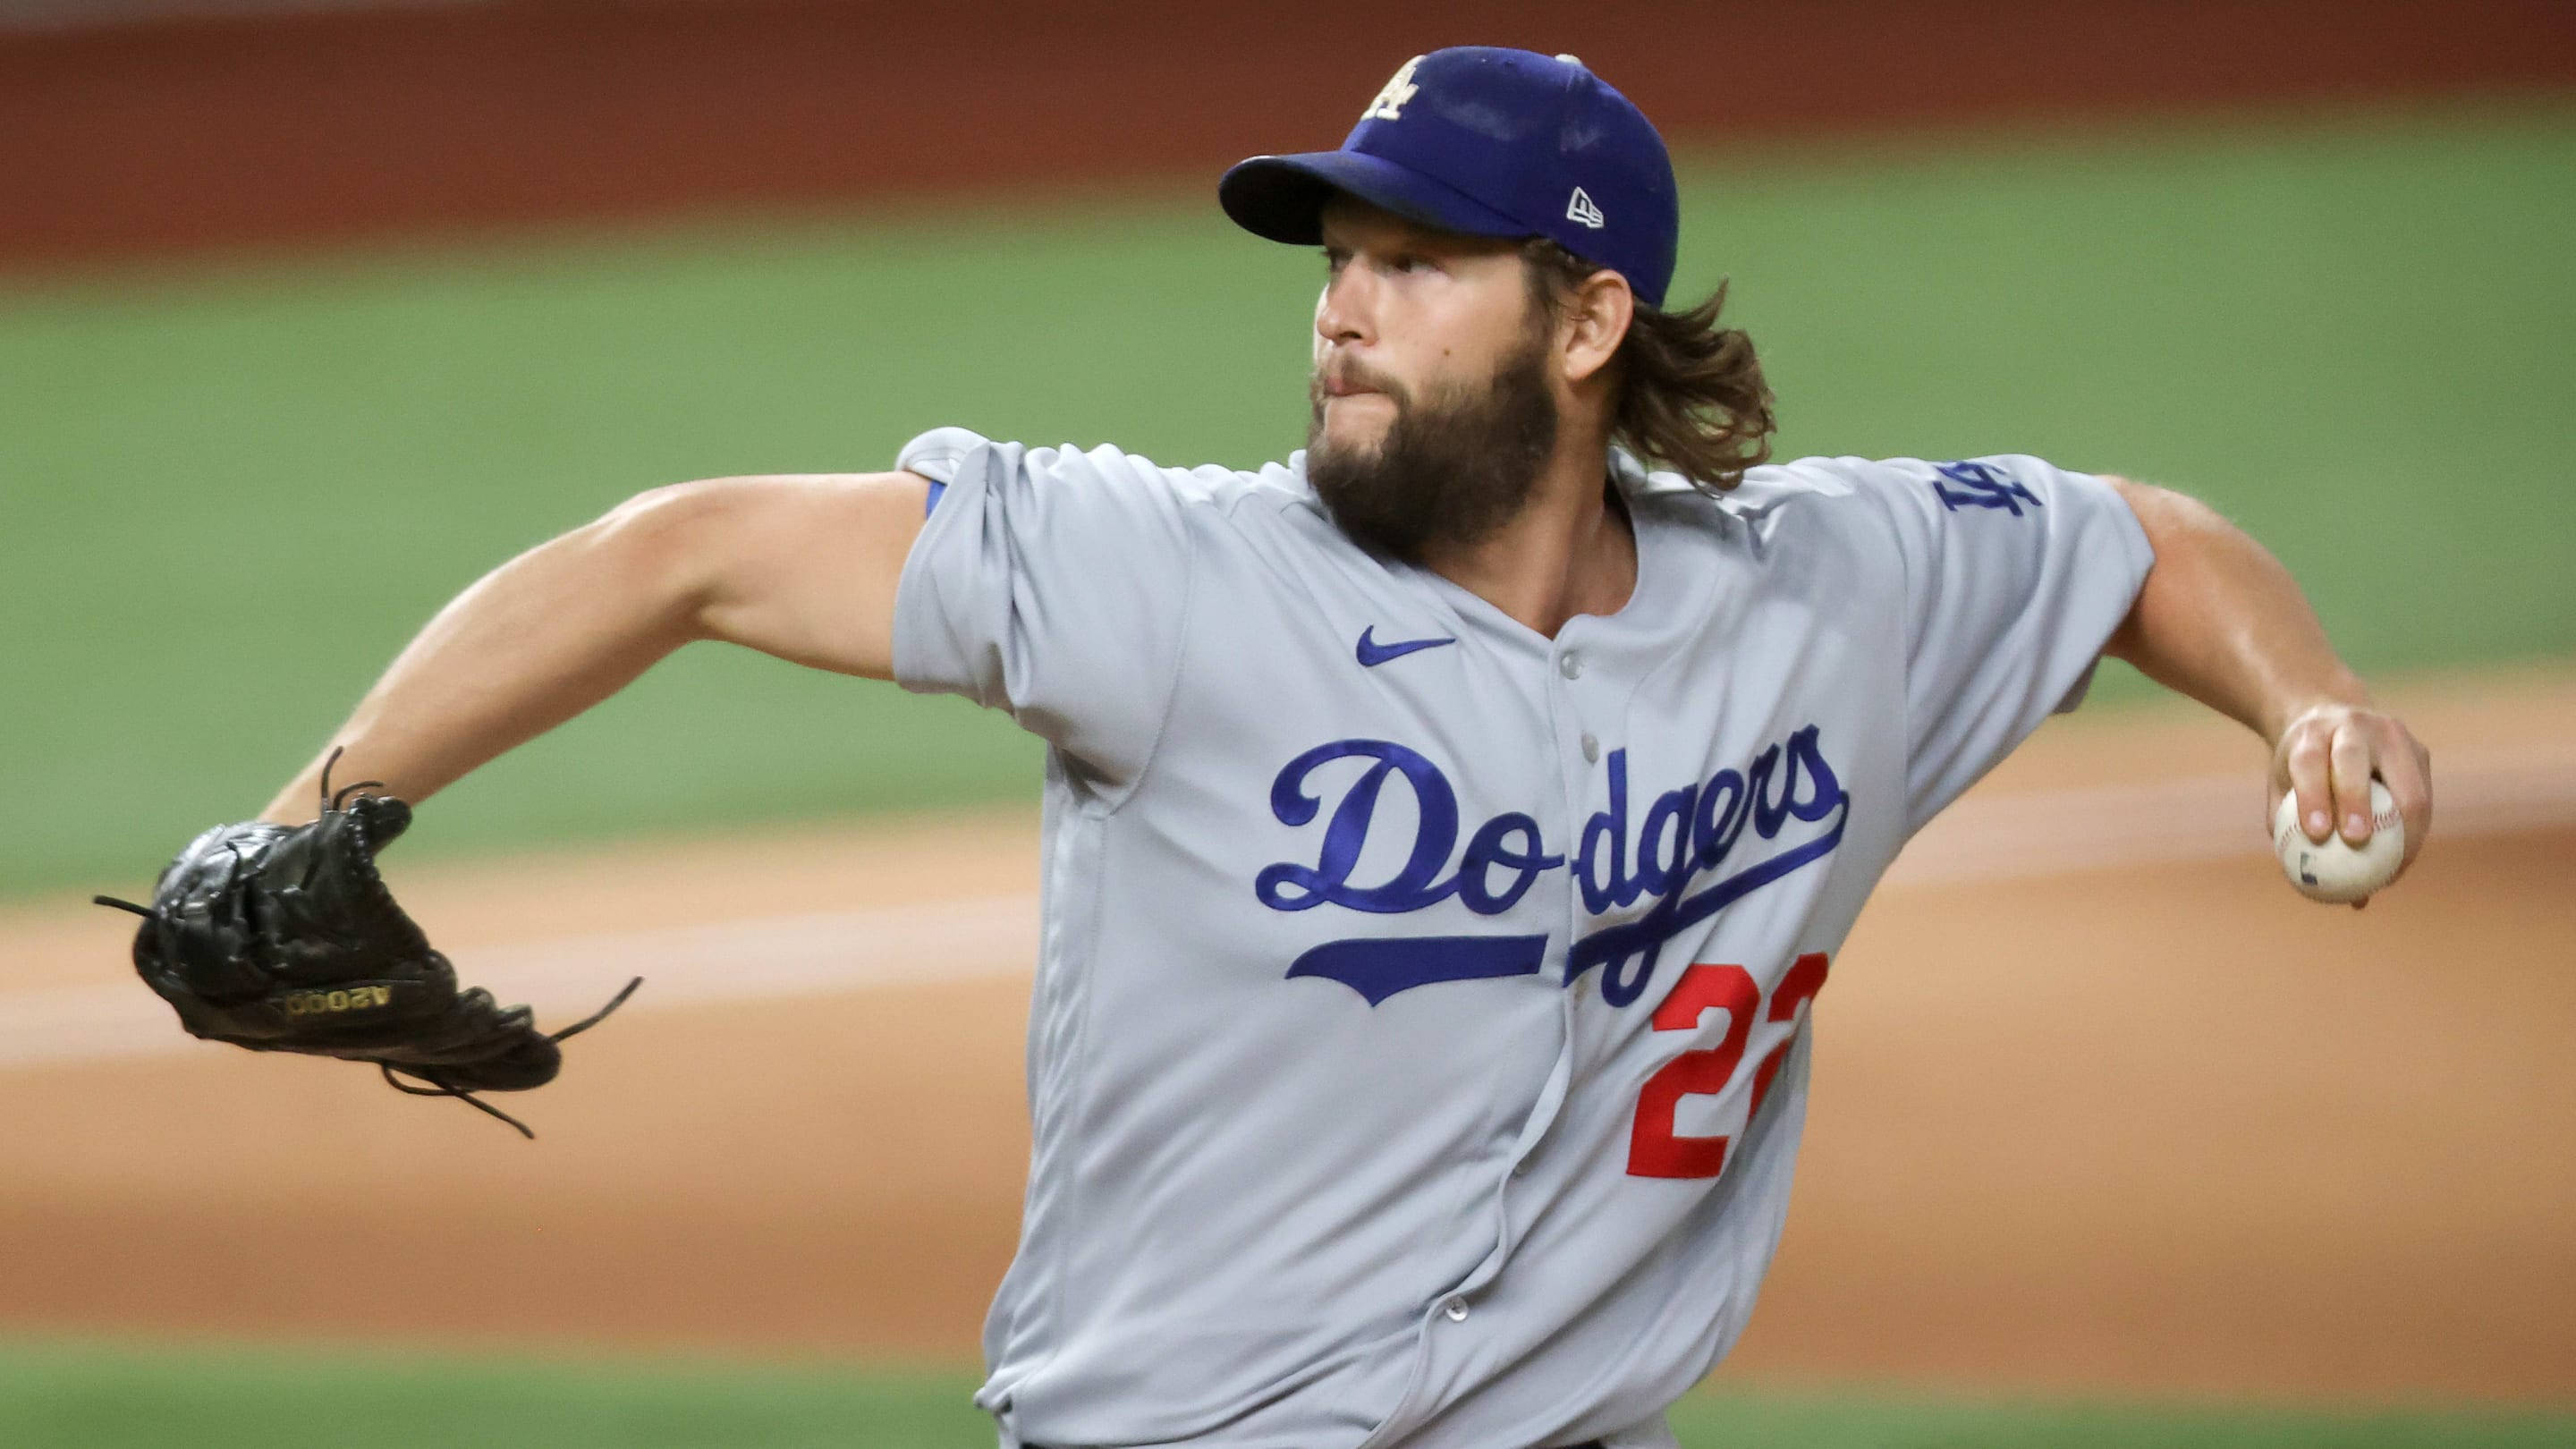 Rays vs Dodgers Odds, Probable Pitchers, Betting Lines, Spread & Prediction for MLB Playoffs World Series Game 1